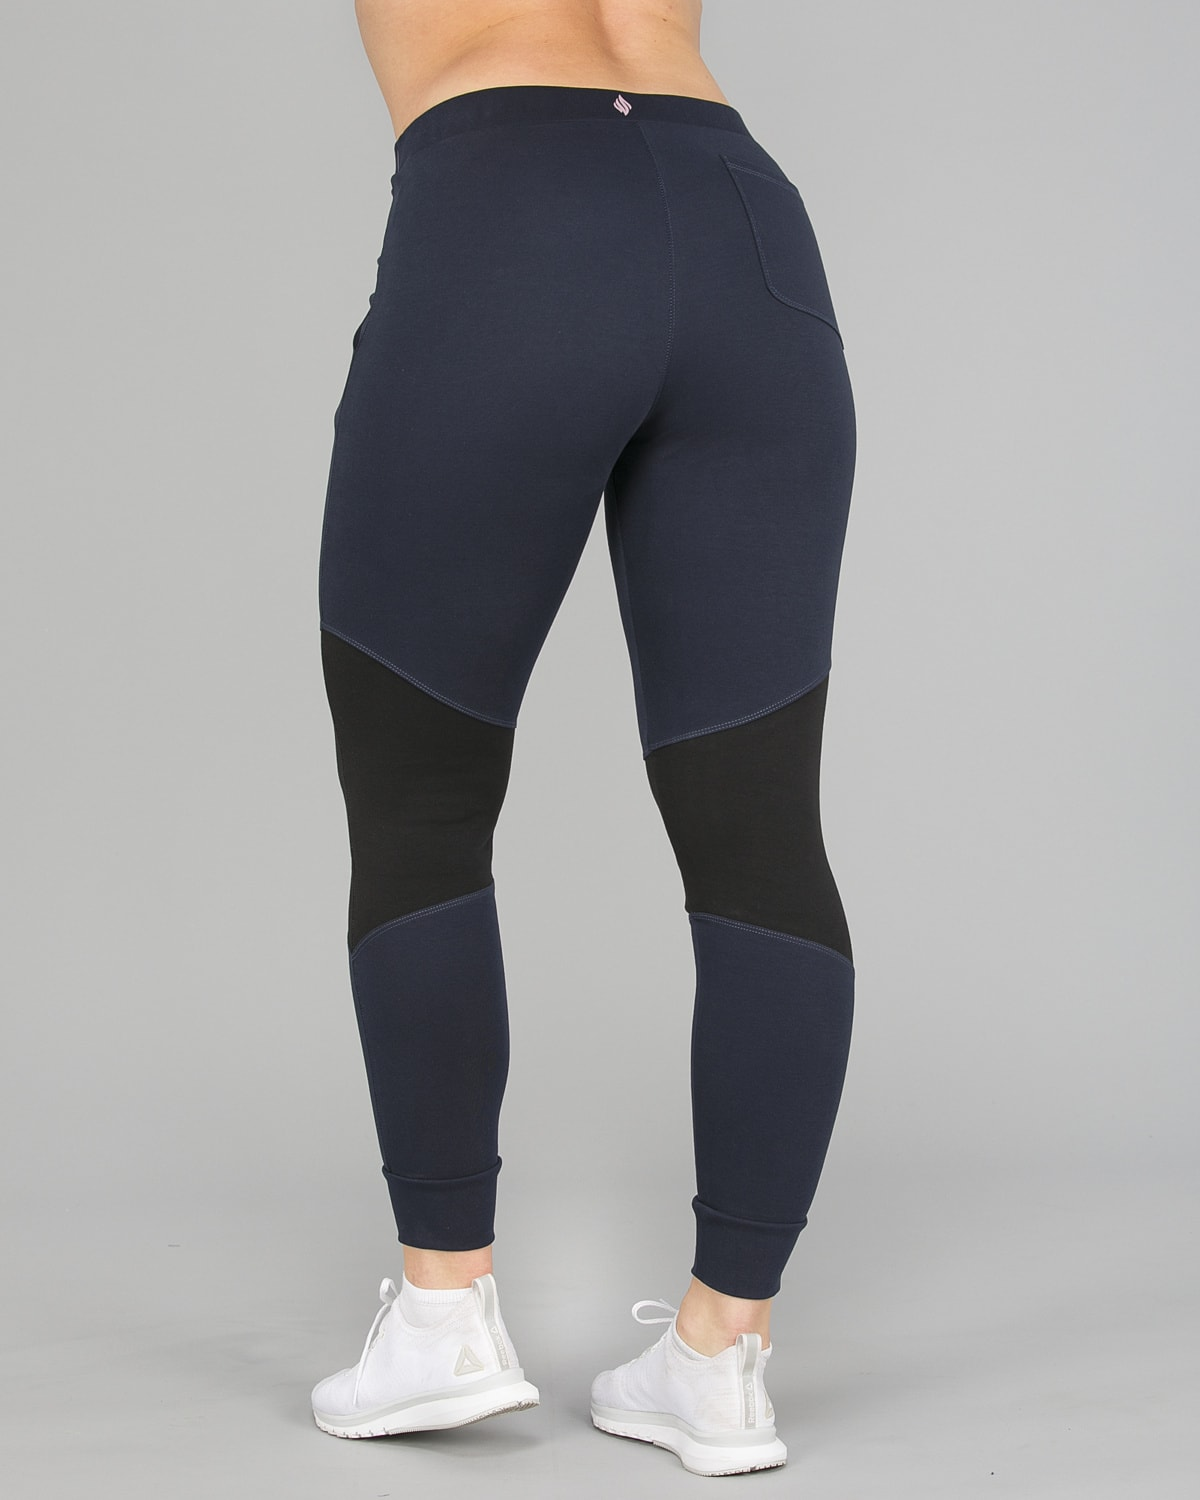 We Are Fit Pearl Pant2